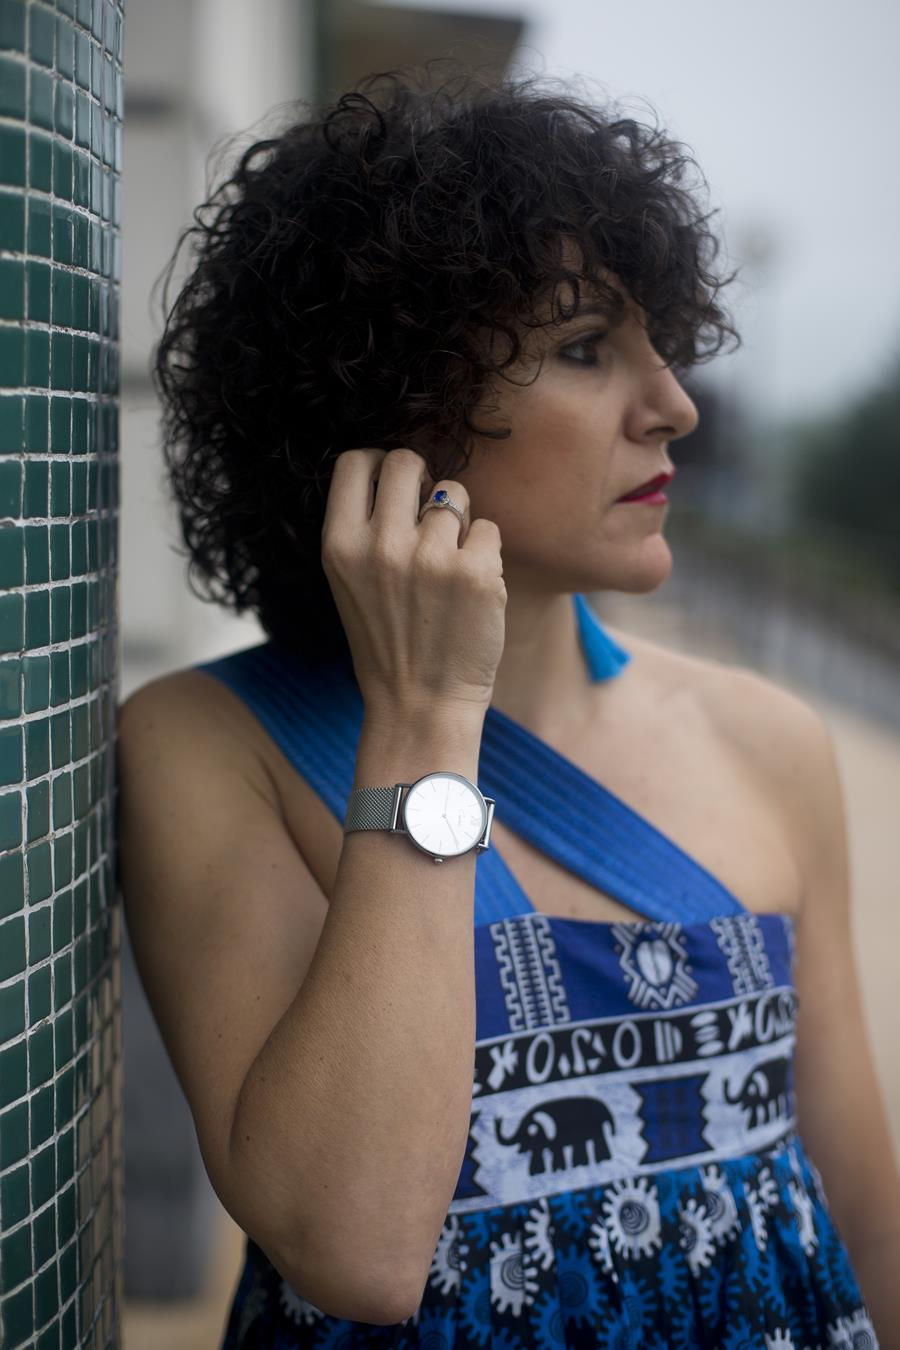 Rebeca Valdivia, asesora de imagen, personal shopper, estilista, stilist, Donostia, San Sebastián, Miss Clov, sandalias con hebillas, perfecto vaquero, denim jacket, afro, dress, vestido globo, Fanny Alonso Couture, Die Mier by Yolanda, telas, tissue, printed in South Africa, bolso de mano, tachas, tachuelas, pendientes, flecos, fringe, curls, rizos, Capitola Watches, ambassador, embajadora